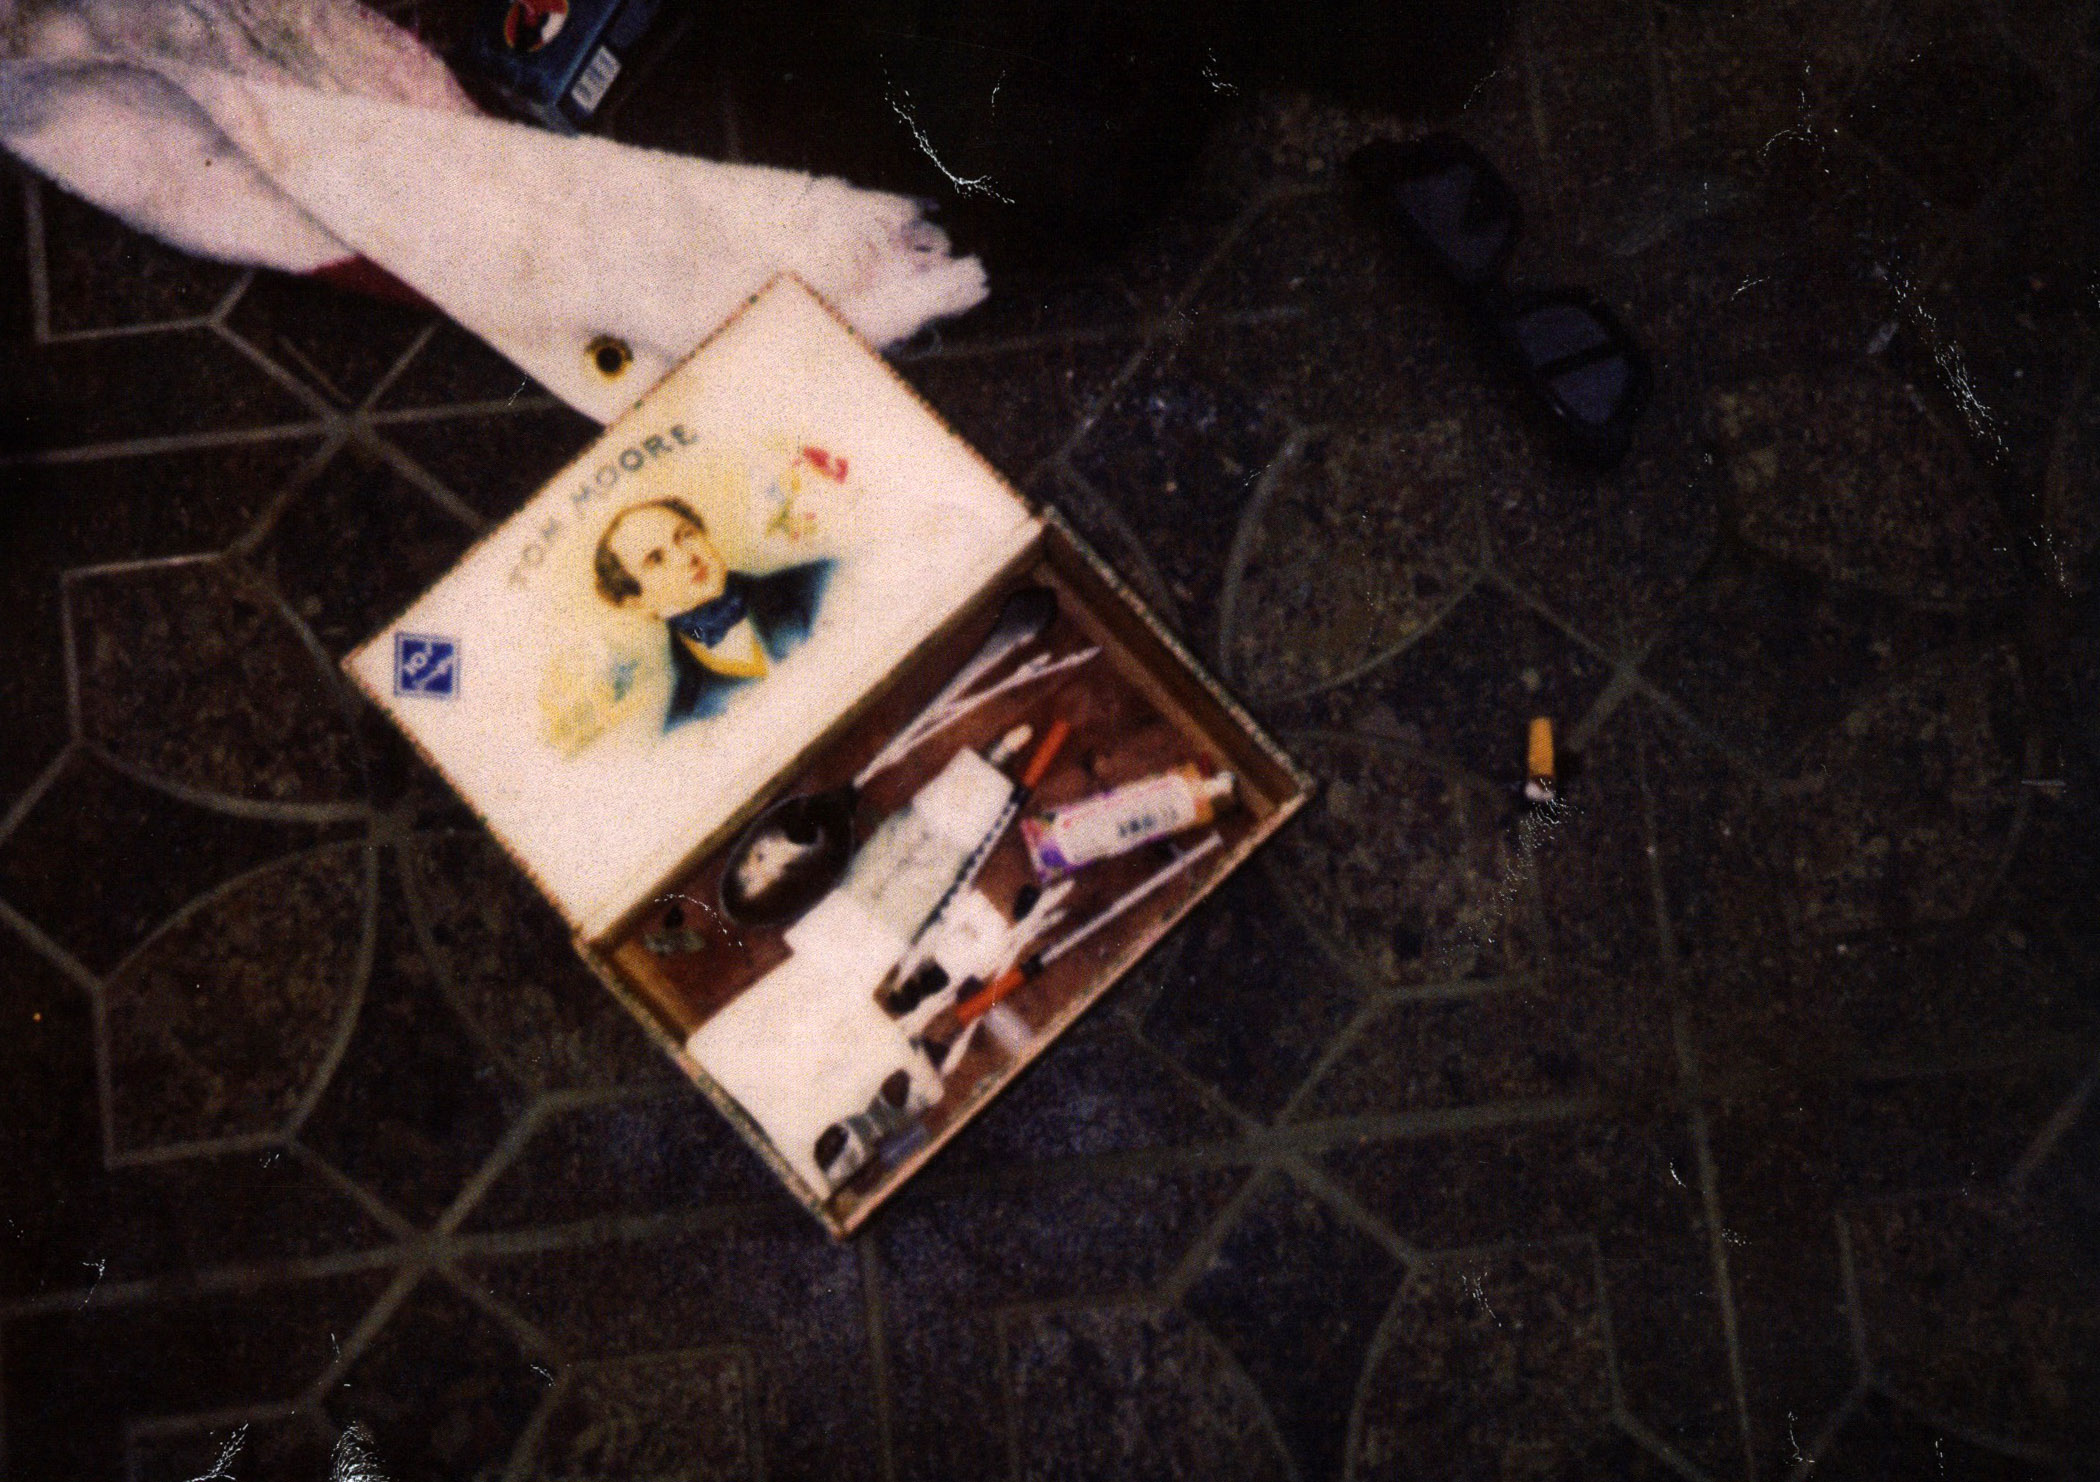 A box with drug paraphernalia in the house of singer Kurt Cobain in Seattle. The photo was released on March 21, 2014.